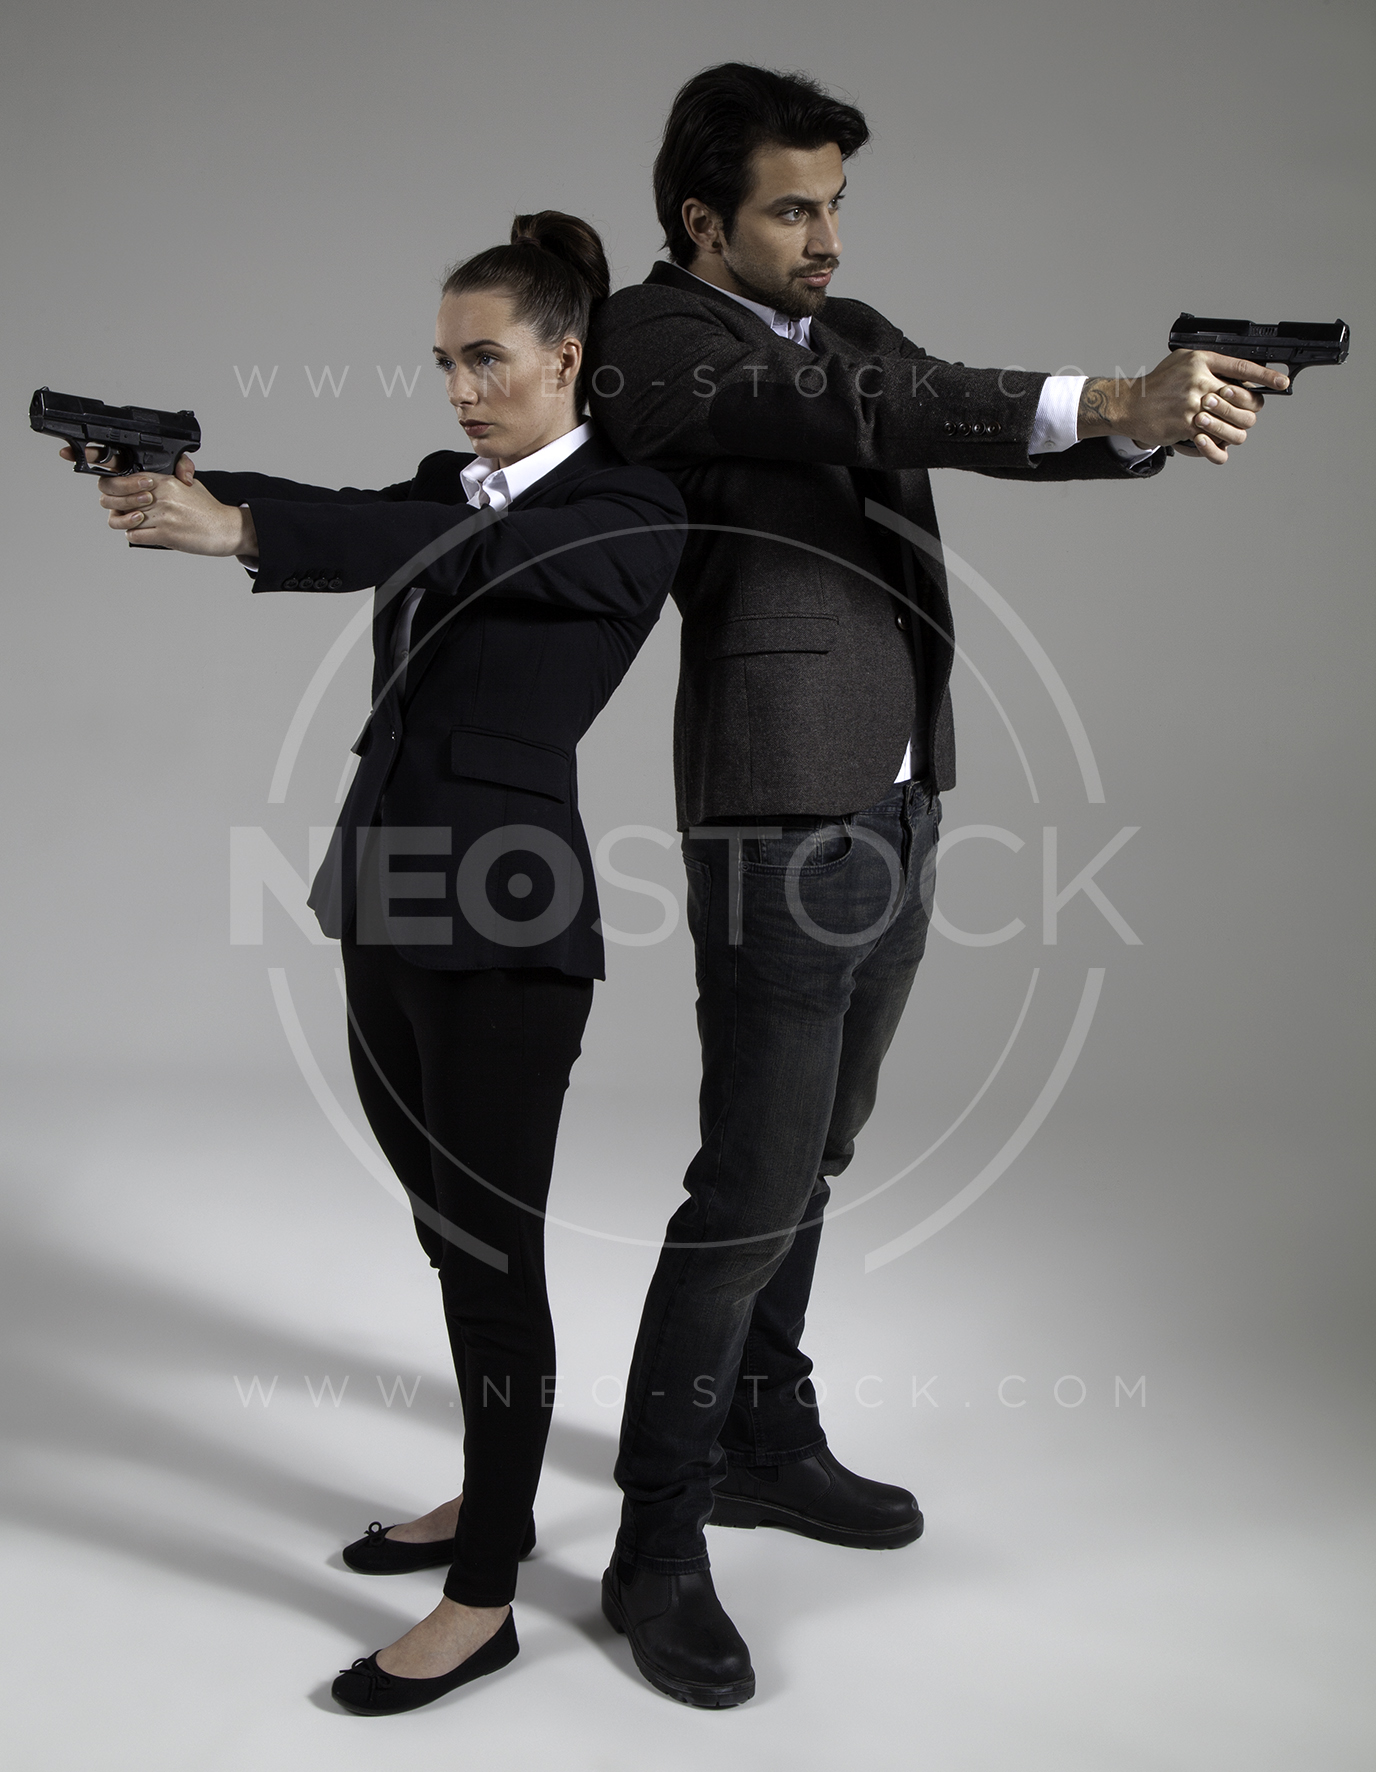 NeoStock - Cop Drama Duo - Stock Photography II